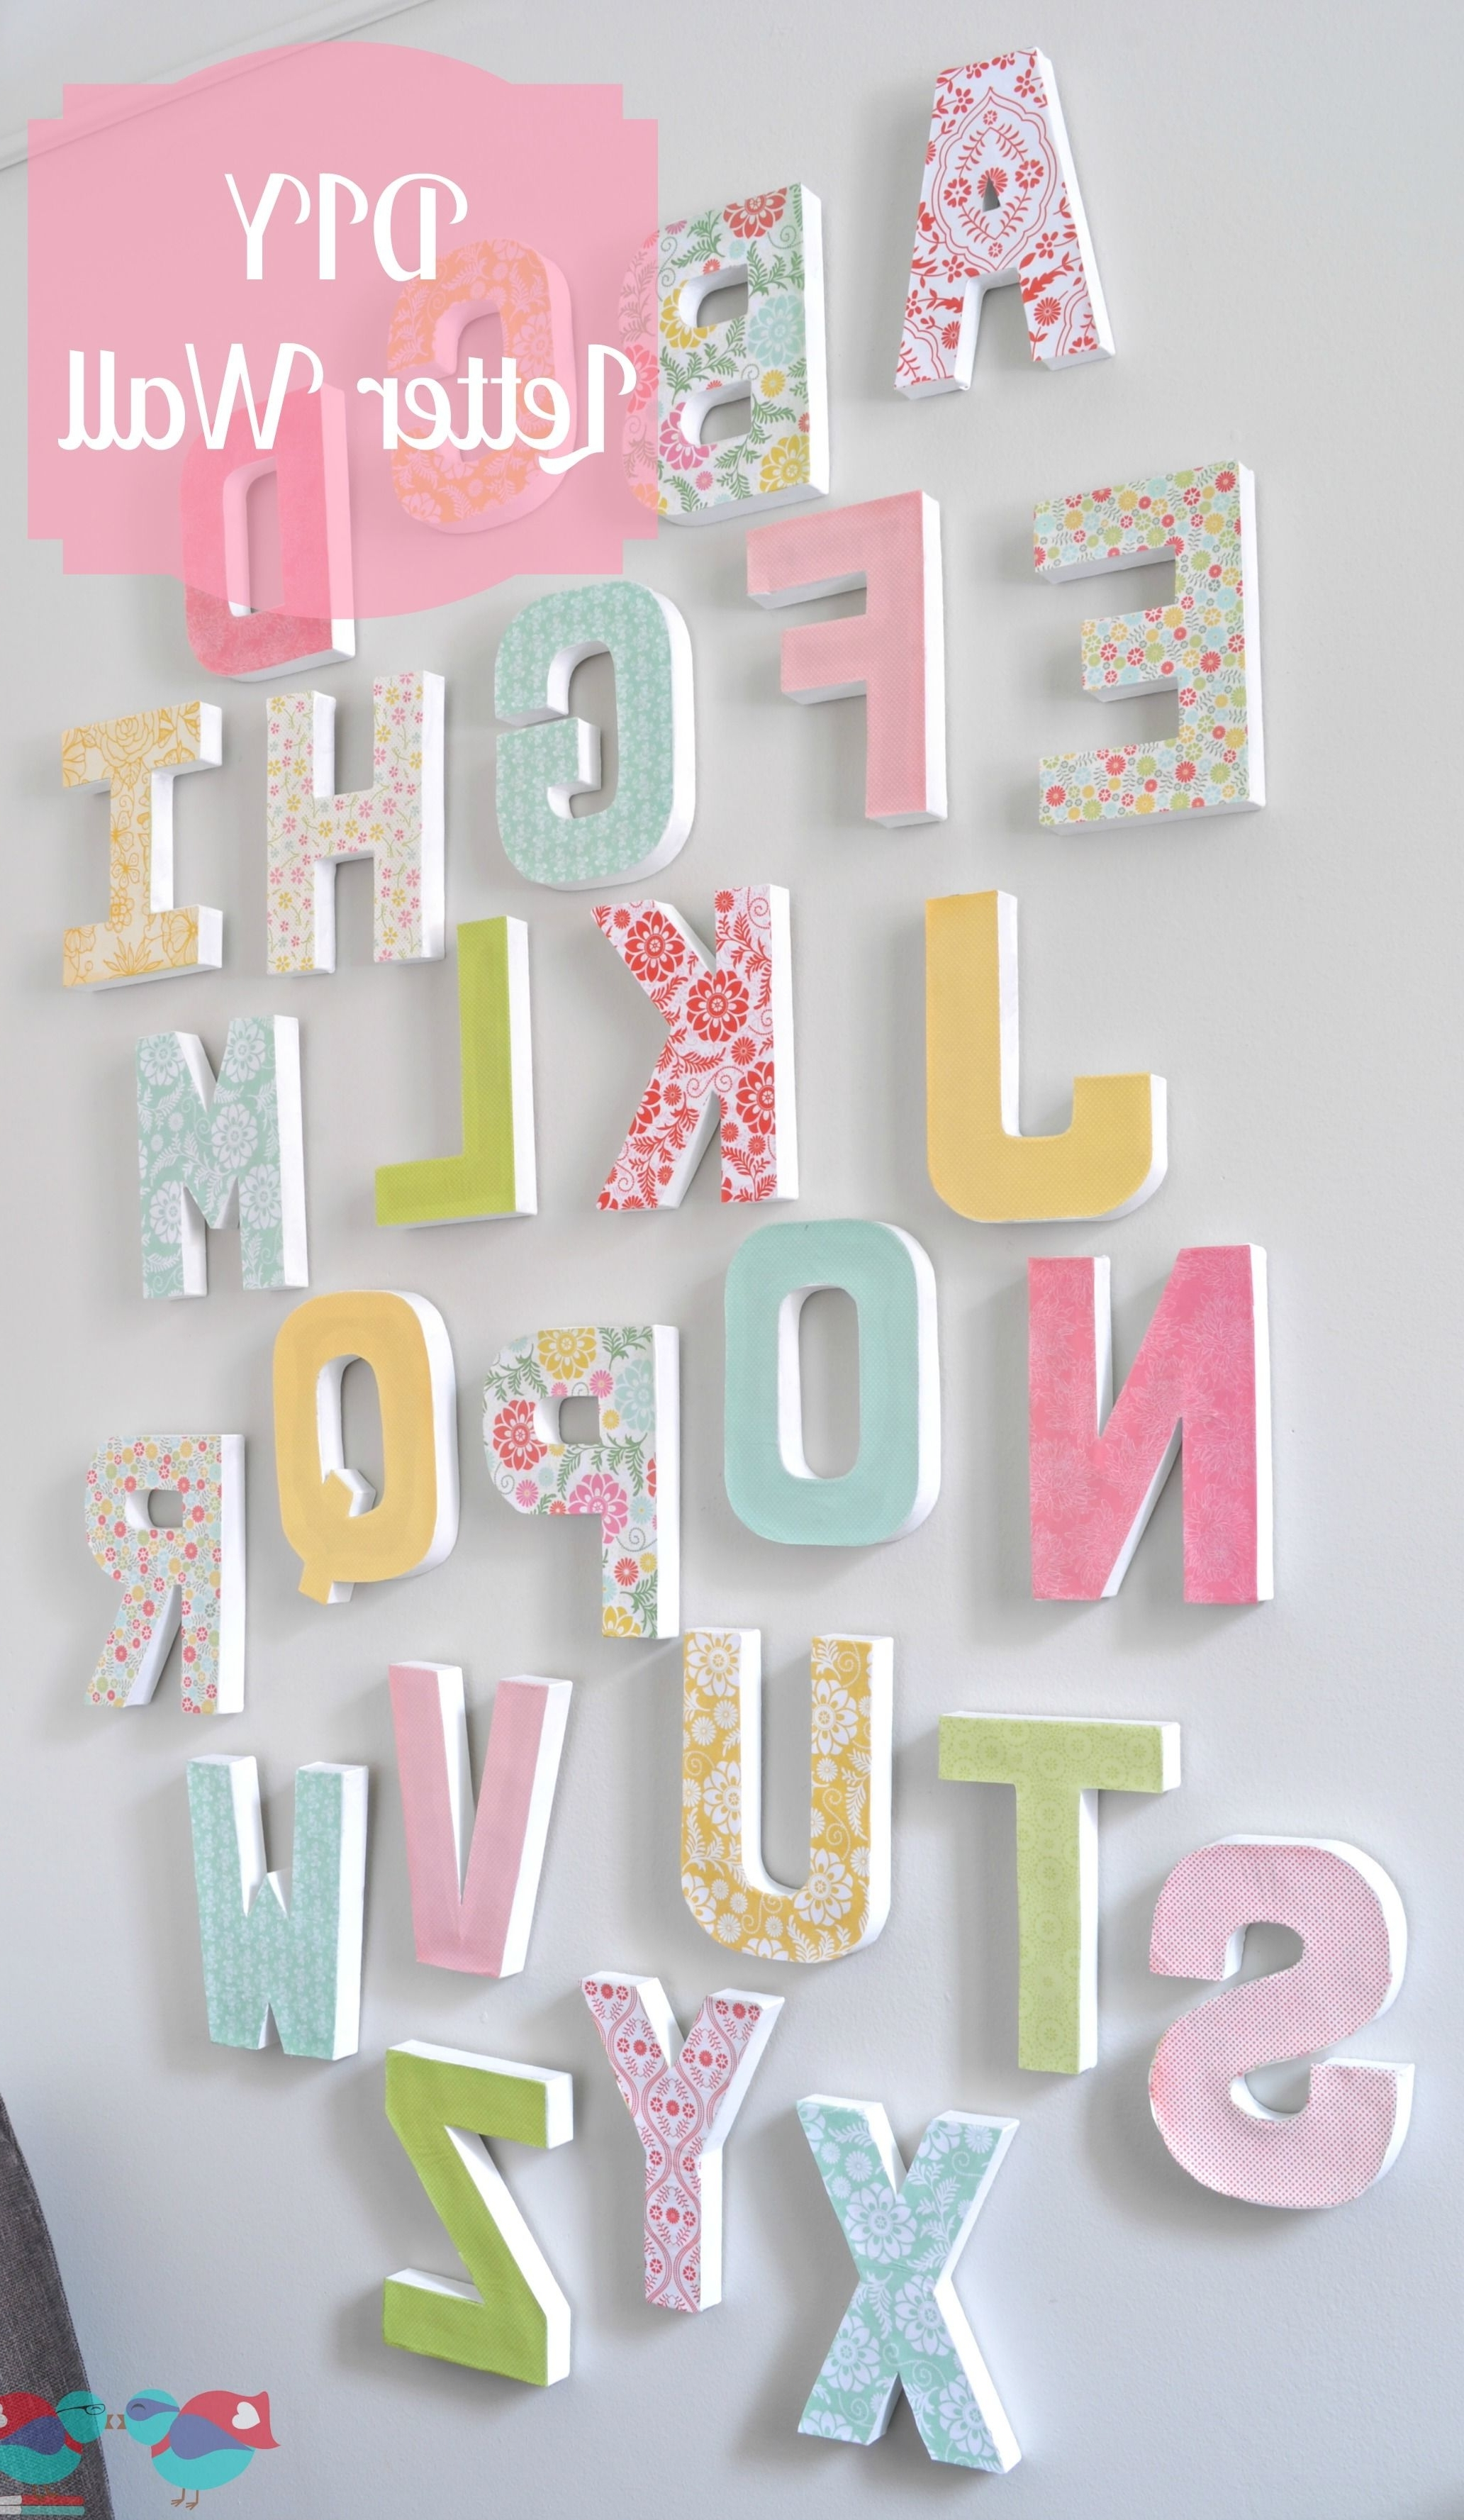 Letter Wall Art With Widely Used Diy Letter Wall Decor (View 8 of 15)